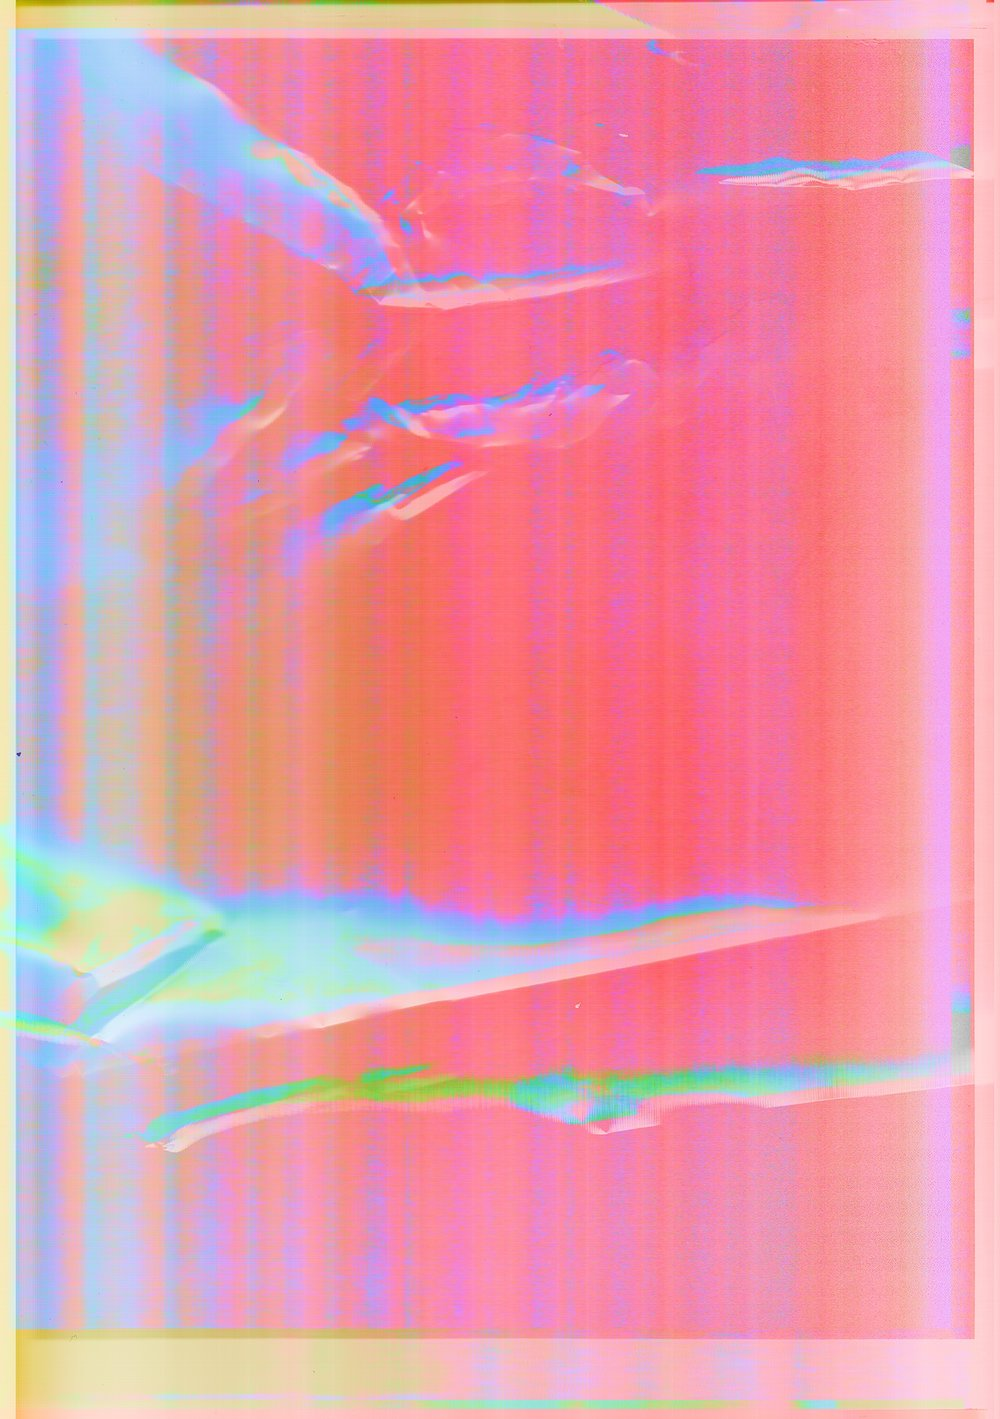 (Forthcoming) Paul Kneale: TBD    Glenhyrst Art Gallery of Brant   Paul Kneale is interested in how the world is constantly translated into a digital language which simplifies, trivialises and depersonalises content and the people it addresses. The artist explores the way in which digital facets of our existence can be manifested and reimagined in the flesh of the physical object.